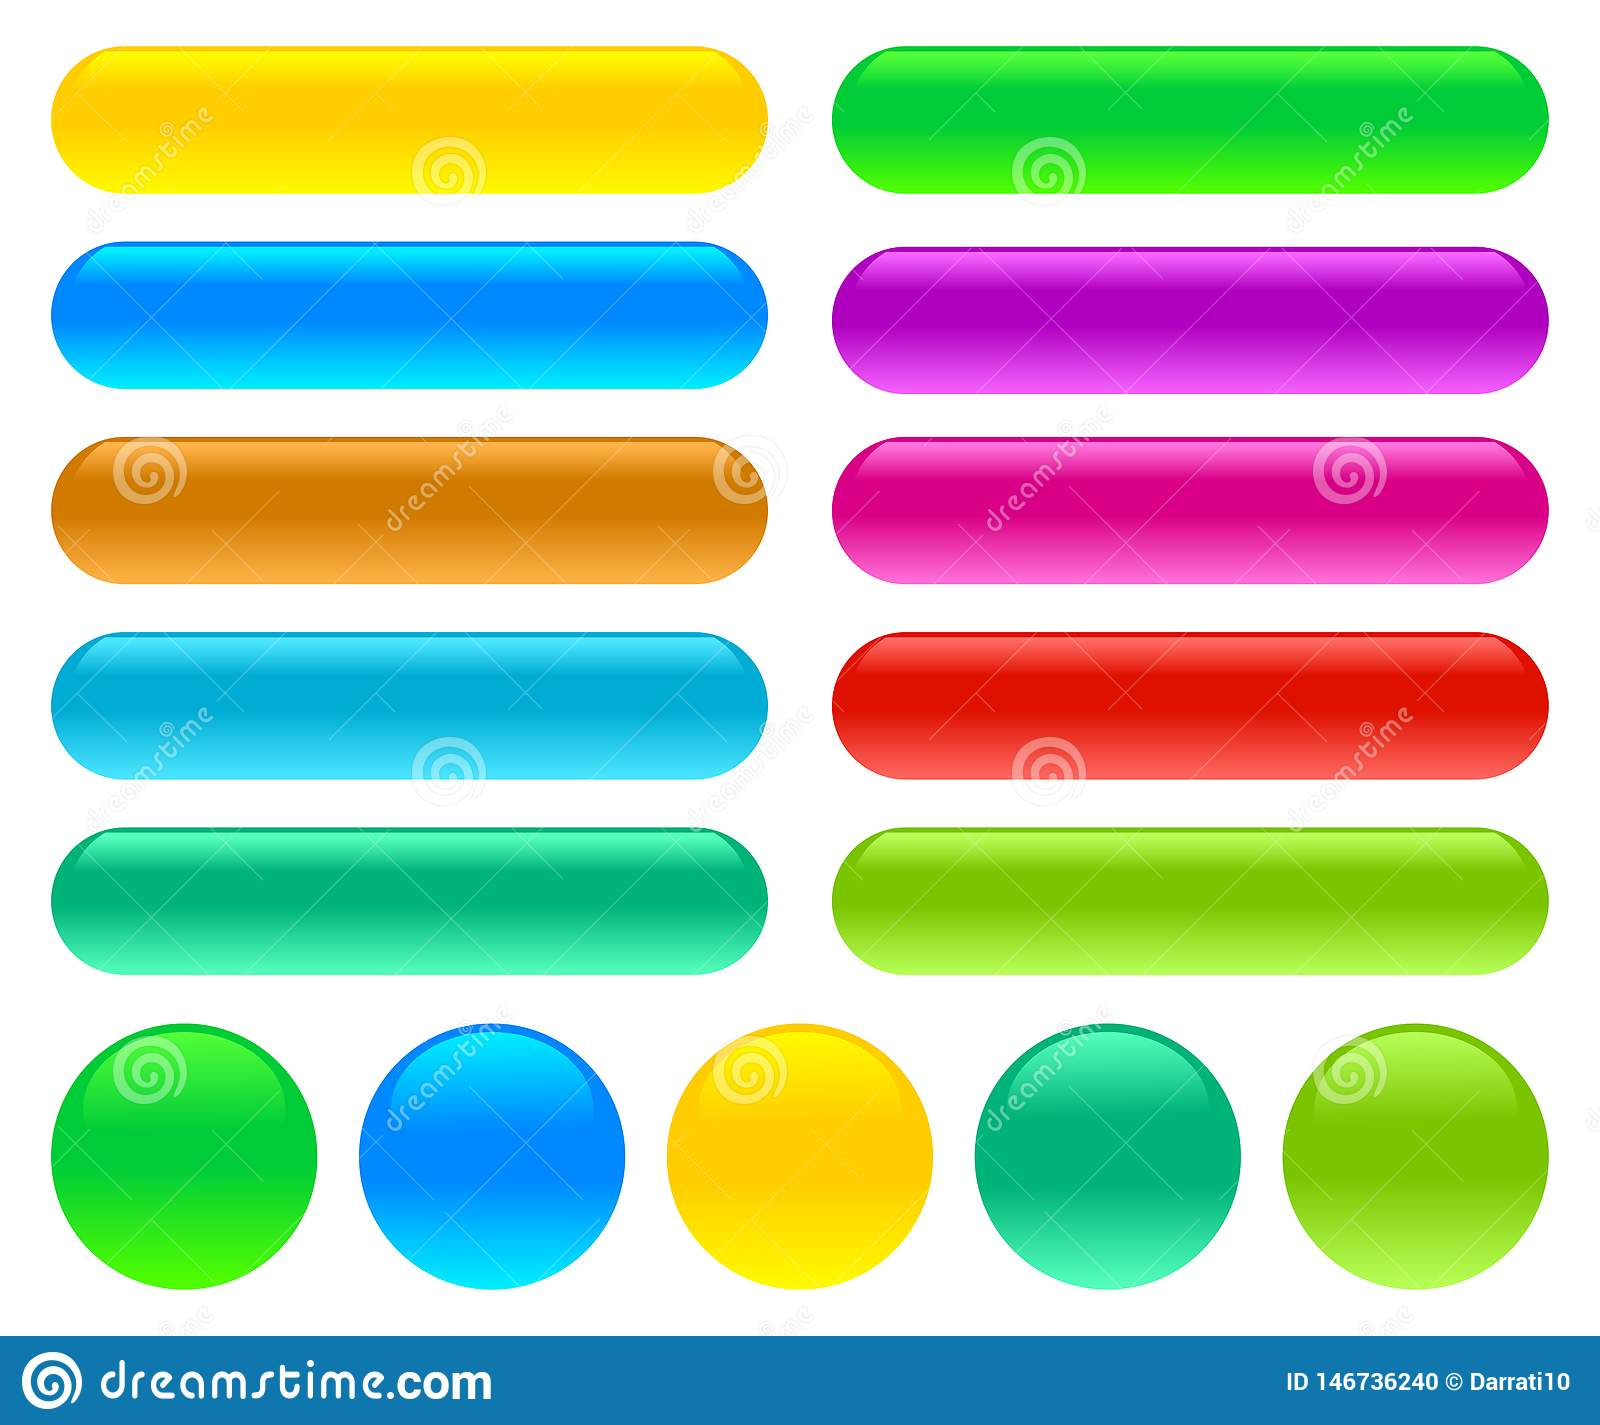 Glossy glass buttons on an isolated white background